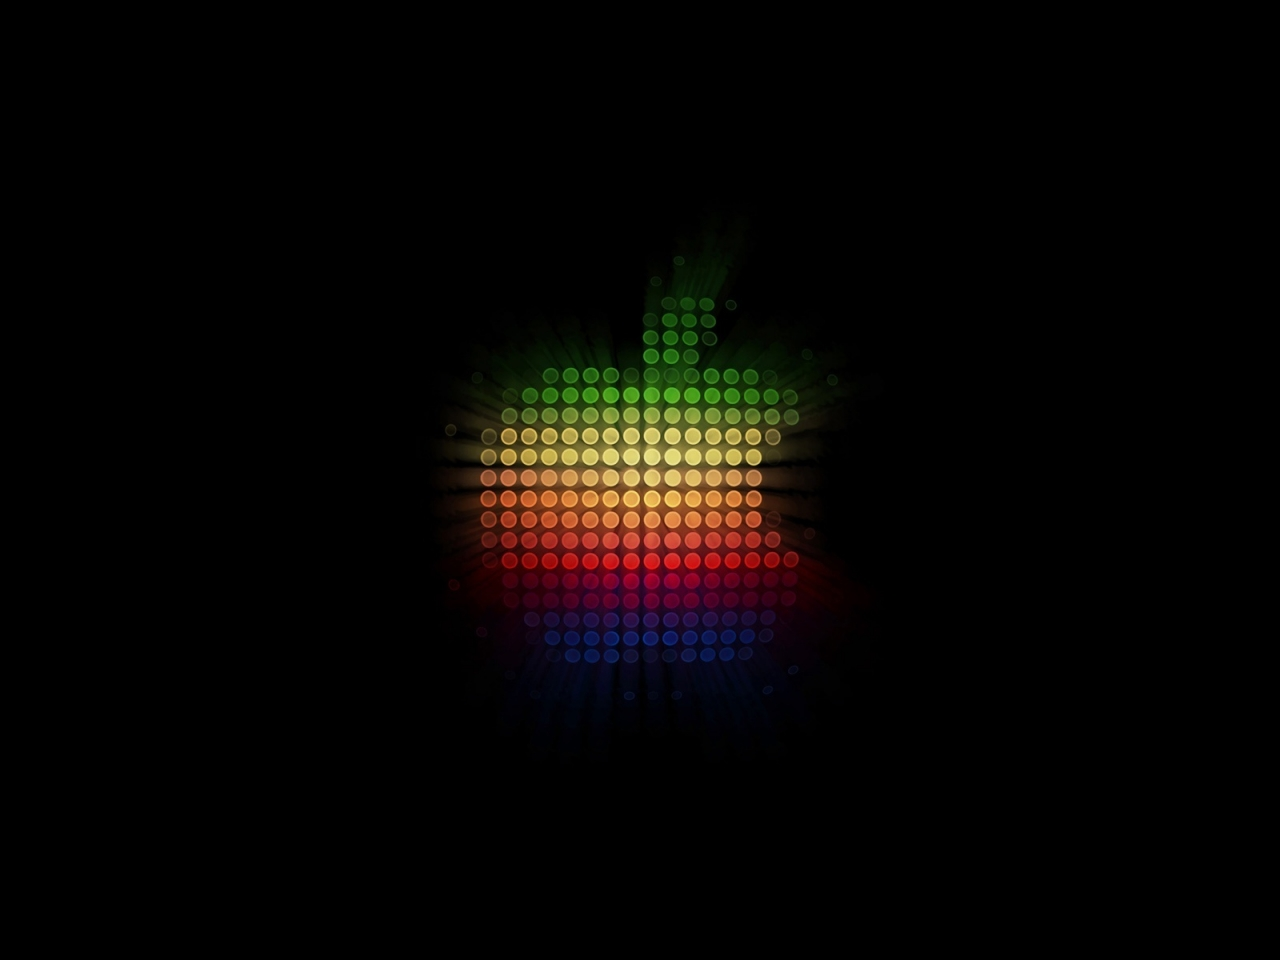 Disco Apple for 1280 x 960 resolution